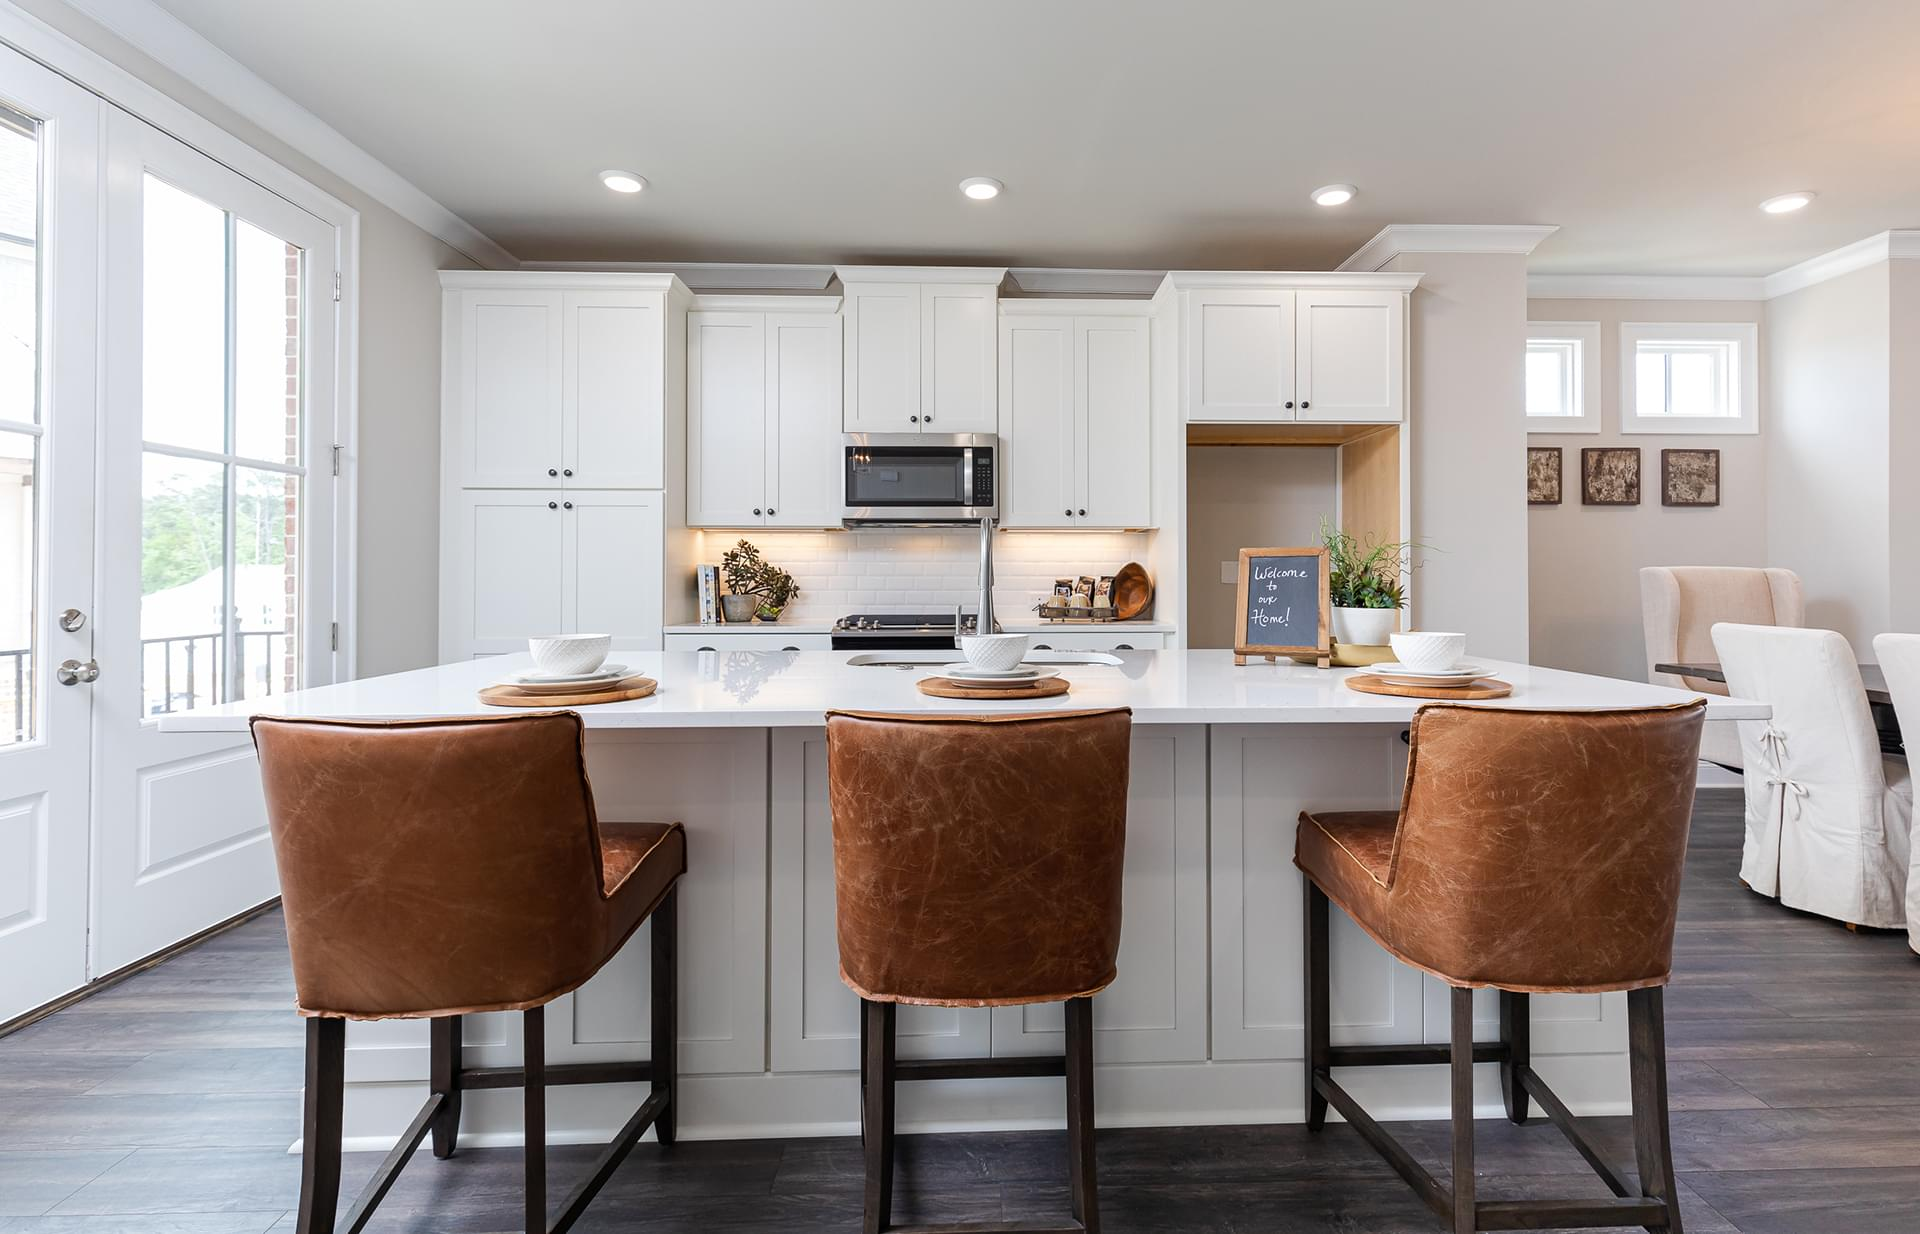 Limited New Construction Opportunities Available in Gwinnett County